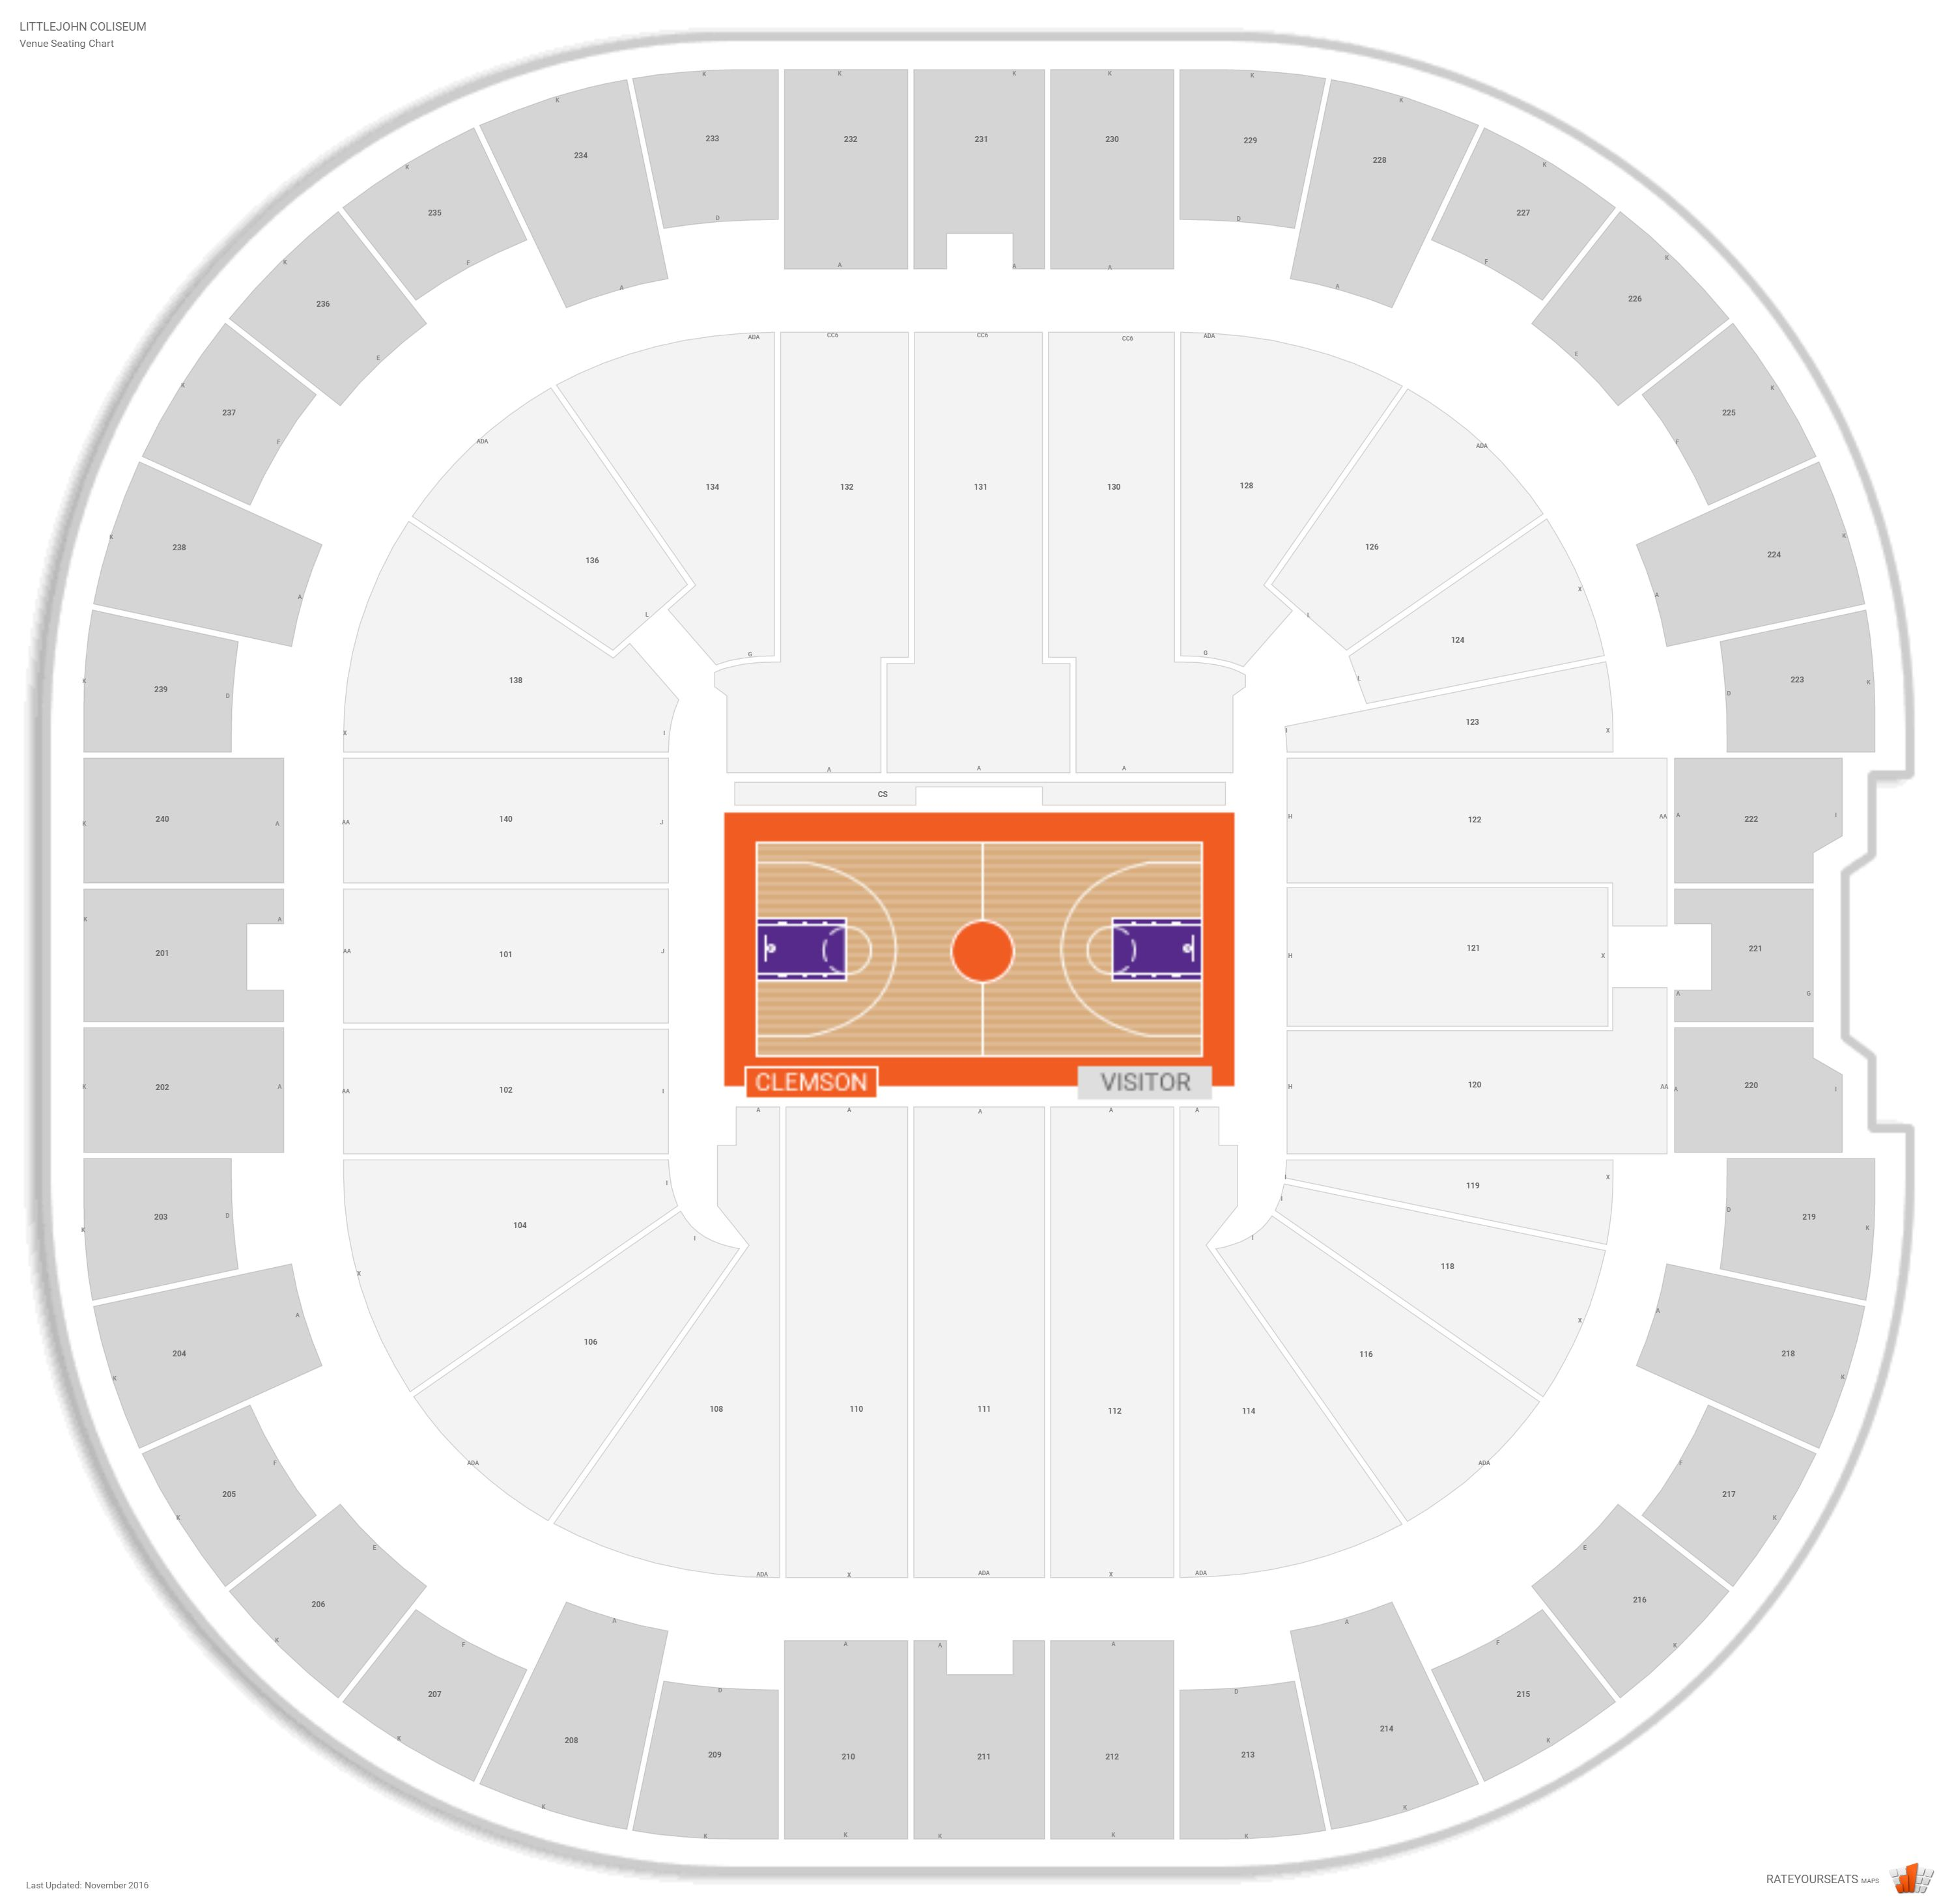 Littlejohn coliseum clemson seating guide rateyourseats com